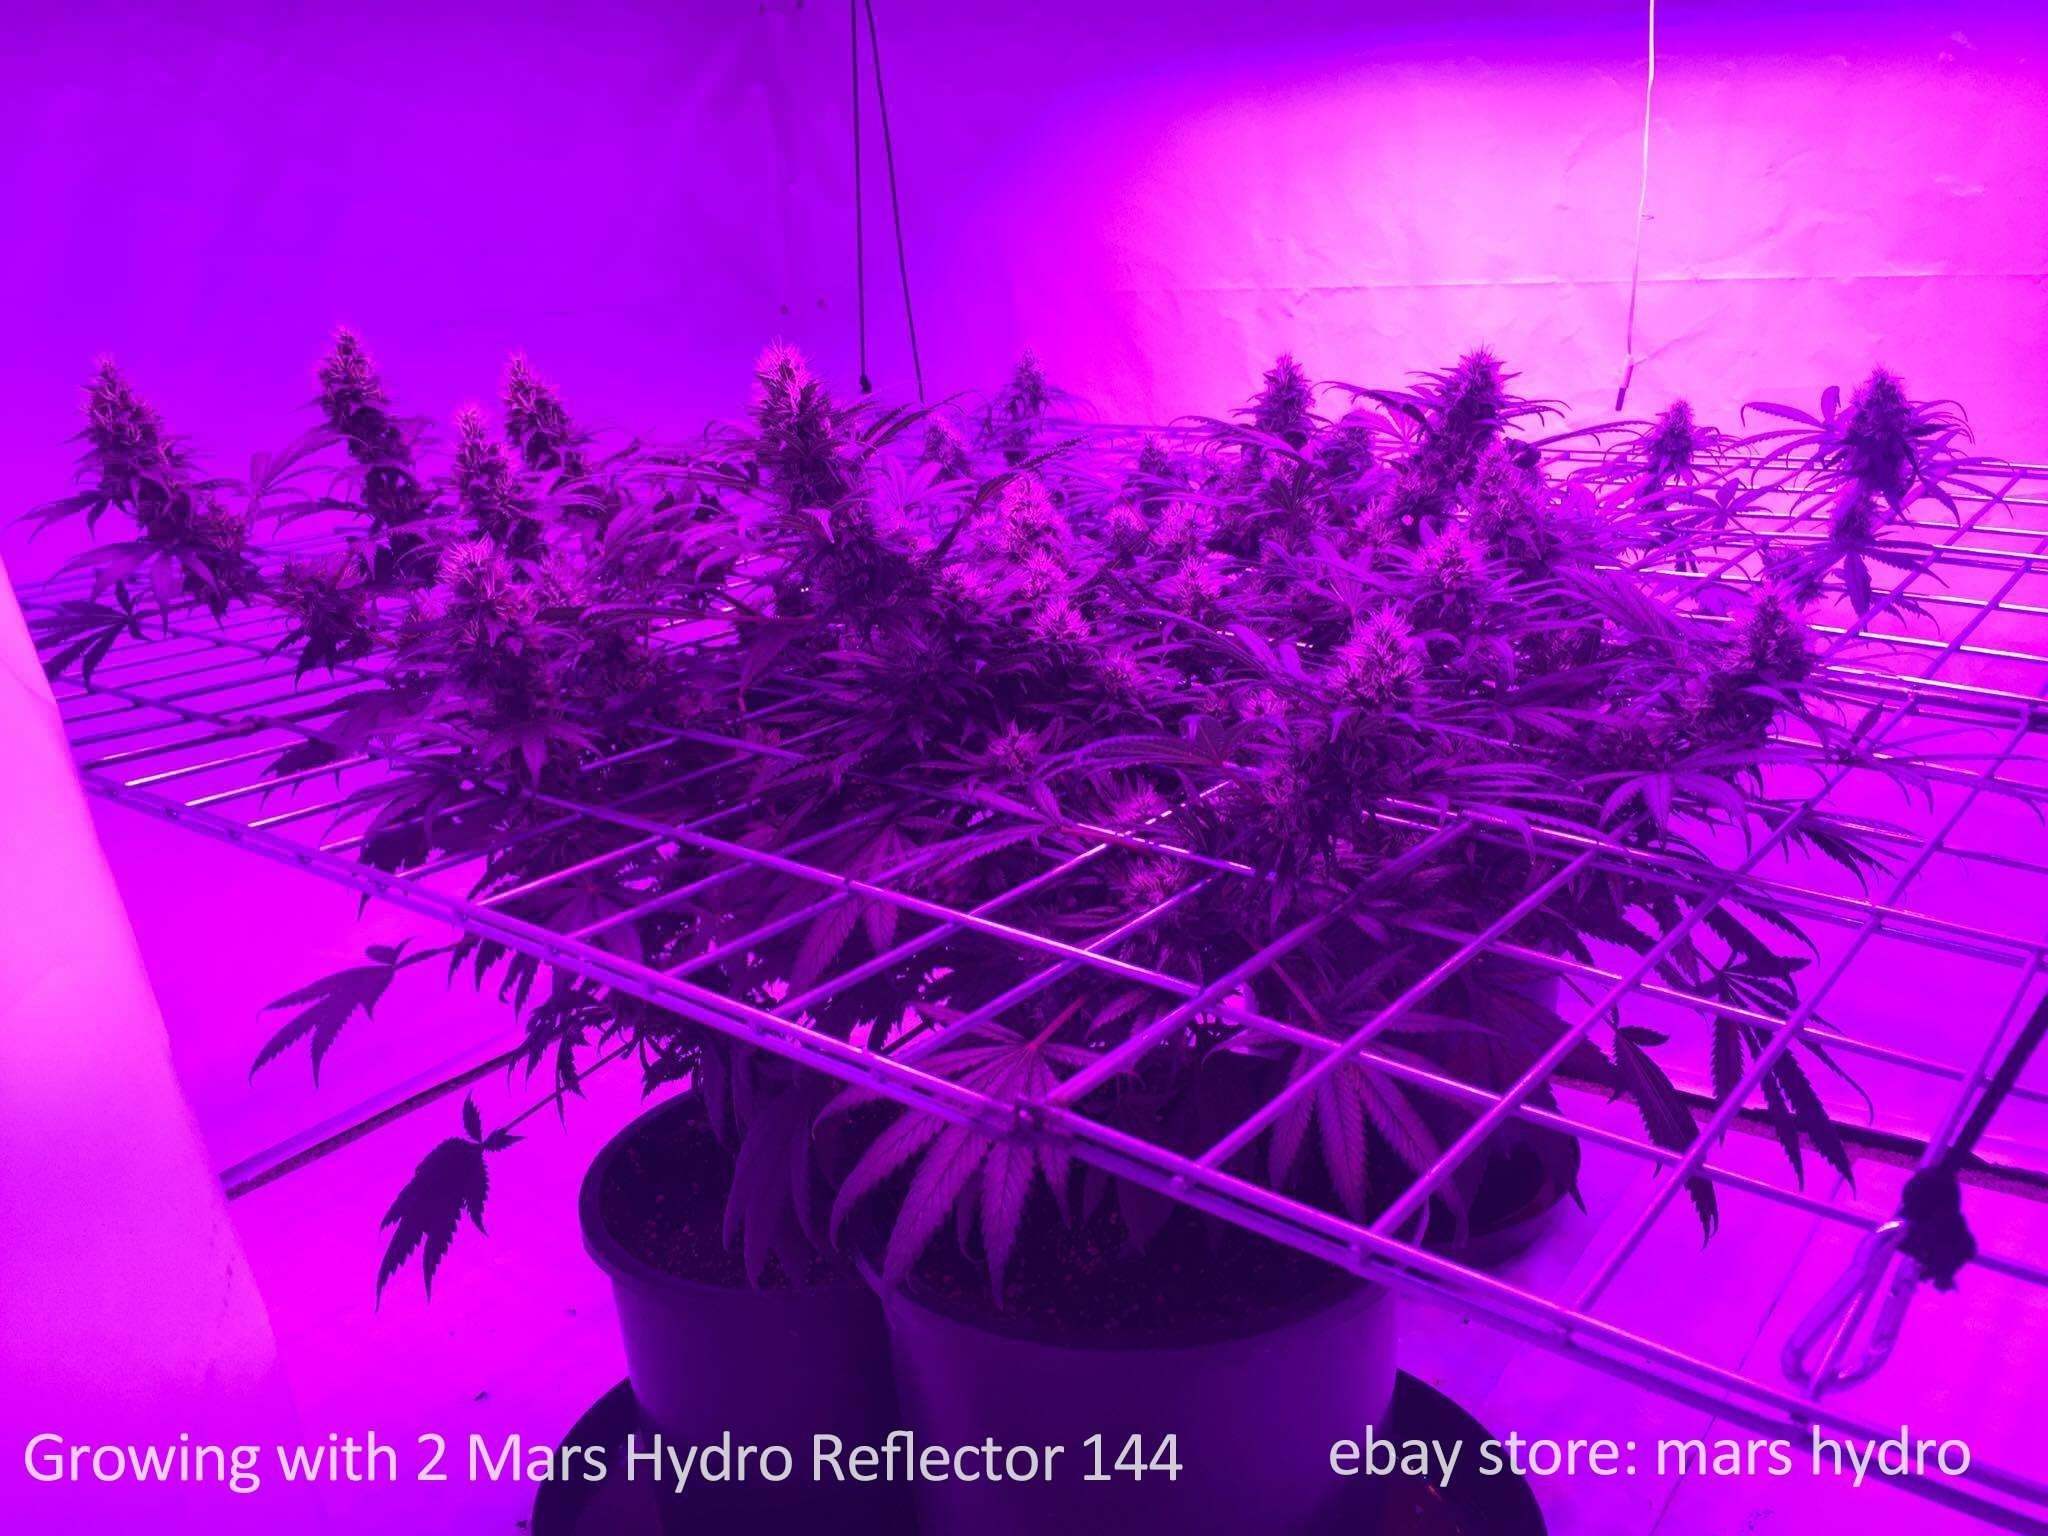 Mars Hydro Led Growing Cannabis With 2 Mars Hydro Reflector 144 Led Grow